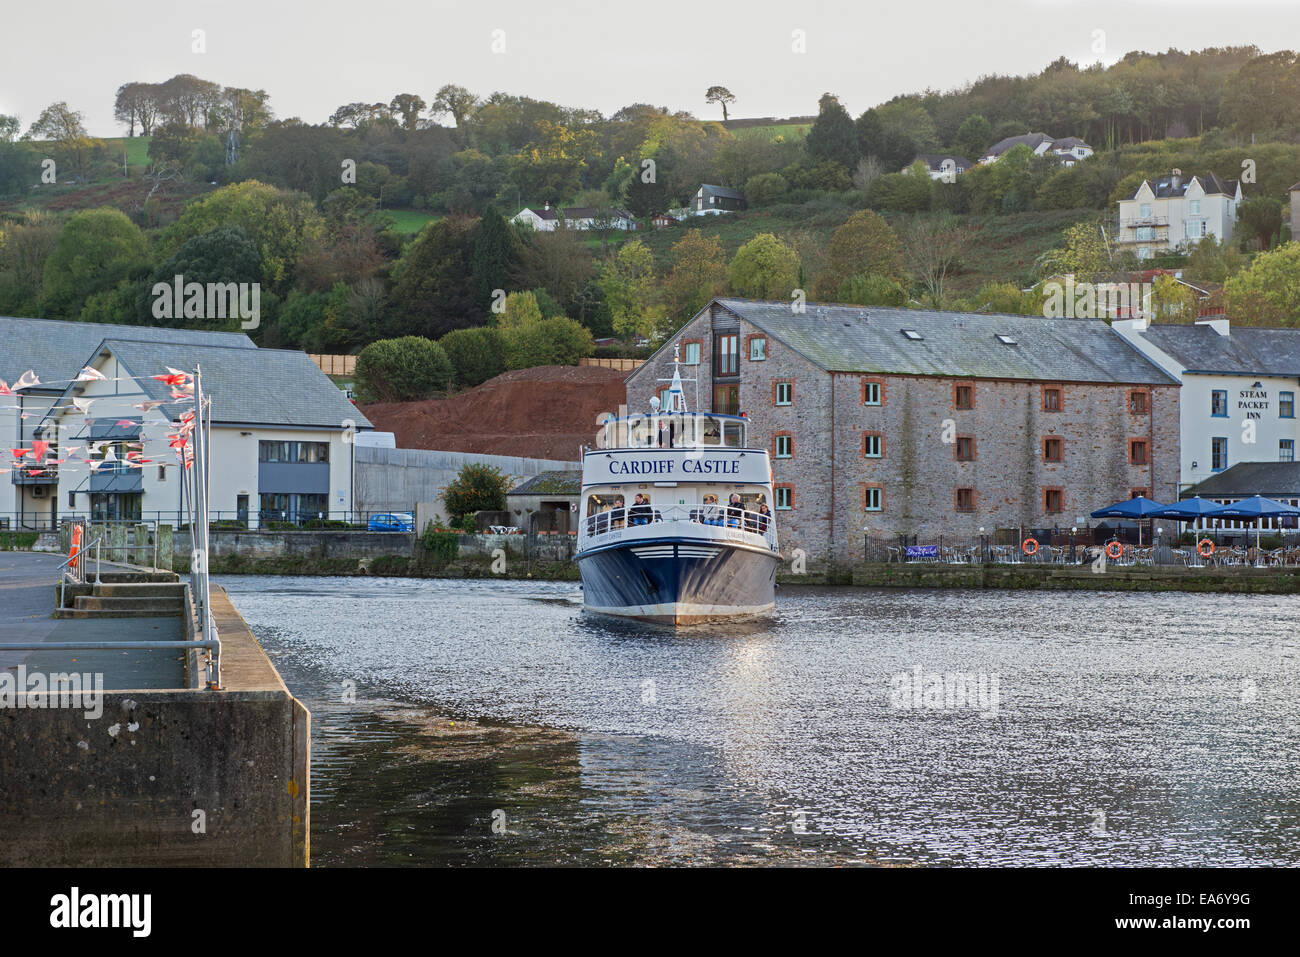 Cardiff Castle twin screw passenger vessel, operating on the River Dart in South Devon, UK, - Stock Image